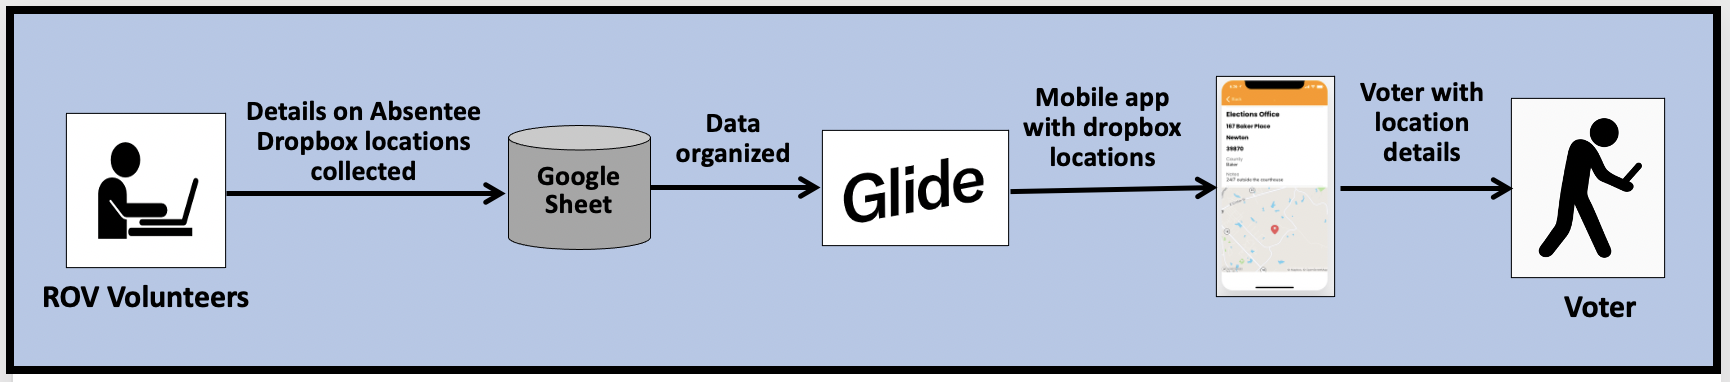 GlideApps converts data from Google Sheet into a mobile app that can be used without having to instal any software.